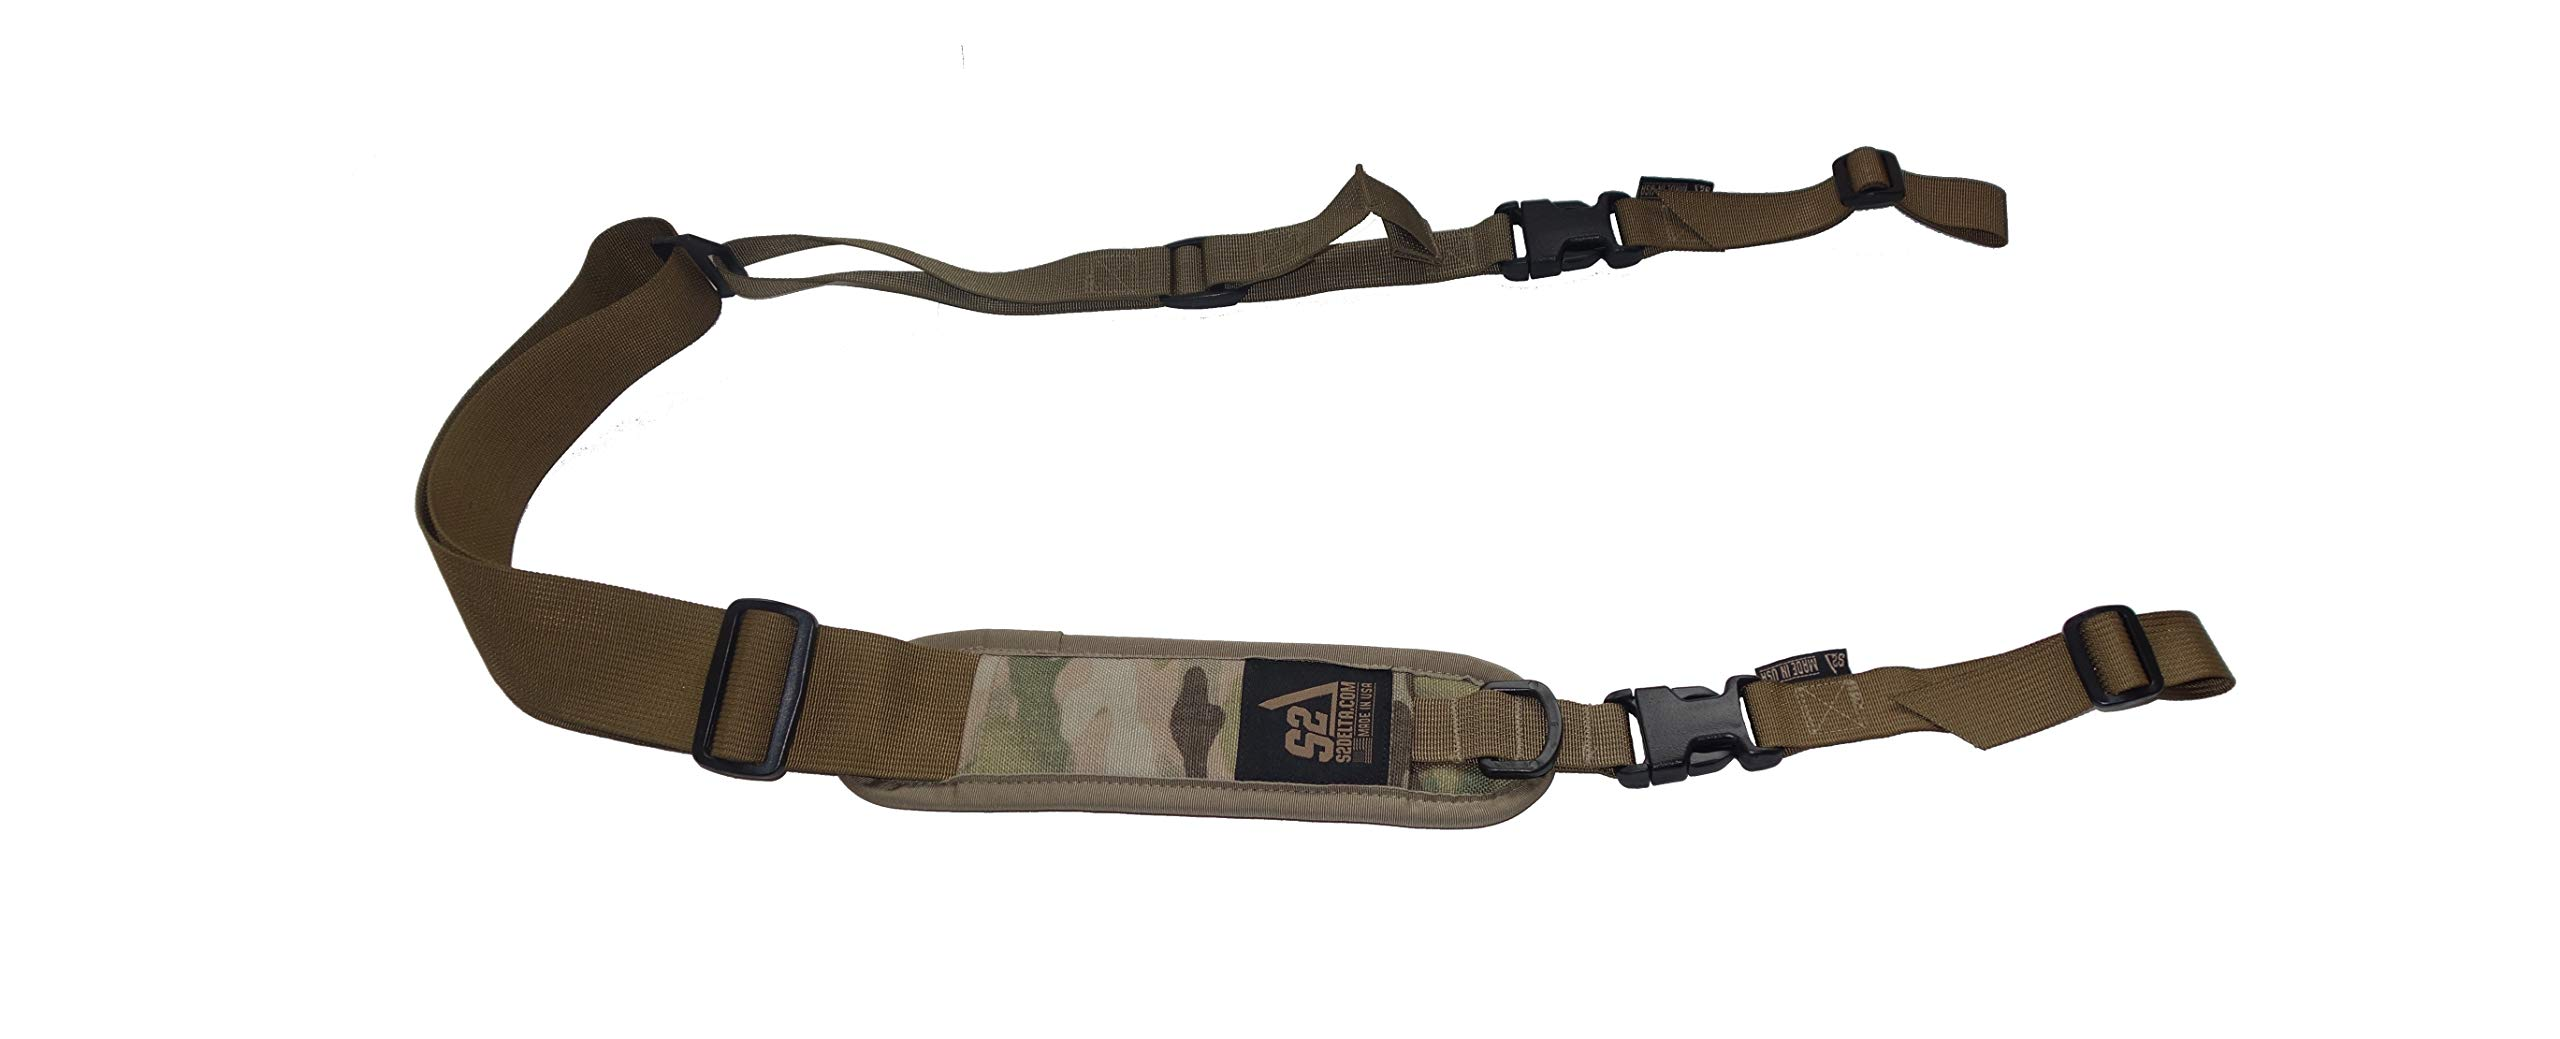 S2Delta - USA Made Premium 2 Point Rifle Sling, Fast Adjustment, Modular Attachment Connections, Comfortable 2'' Wide Shoulder Strap (Coyote Tan Pigtail Padded, Full Sling (Padded)) by S2Delta